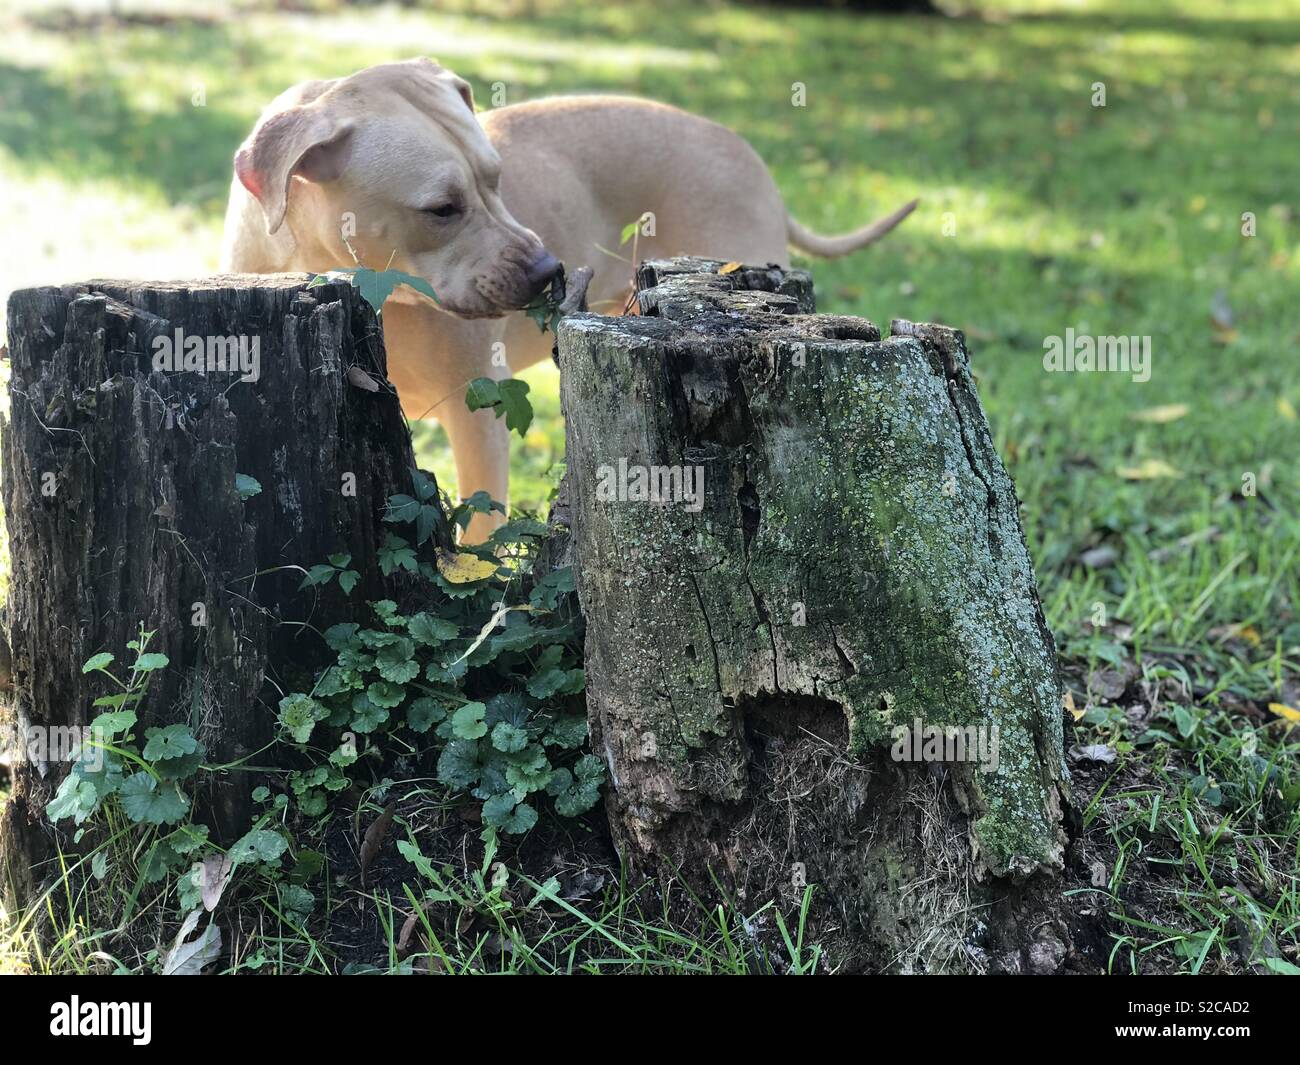 A sweet red nose pitbull nibbles a tree stump on a warm Autumn morning. - Stock Image